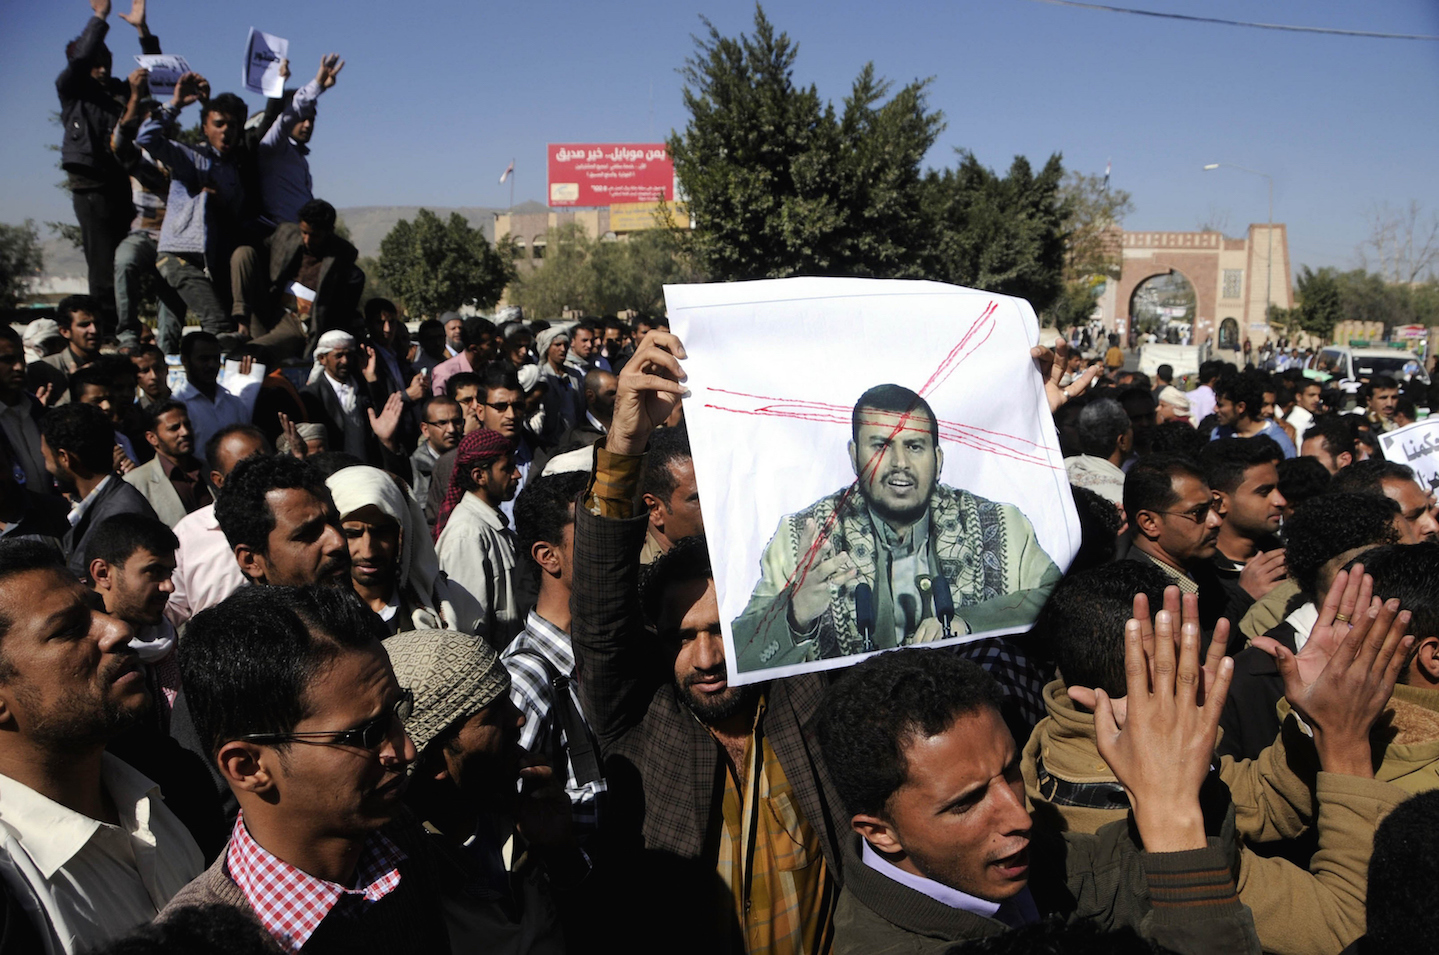 Demonstrations against Houthis in Sana'a. Photo Credit: Mohammed Hamoud/Anadolu Agency/Getty Images